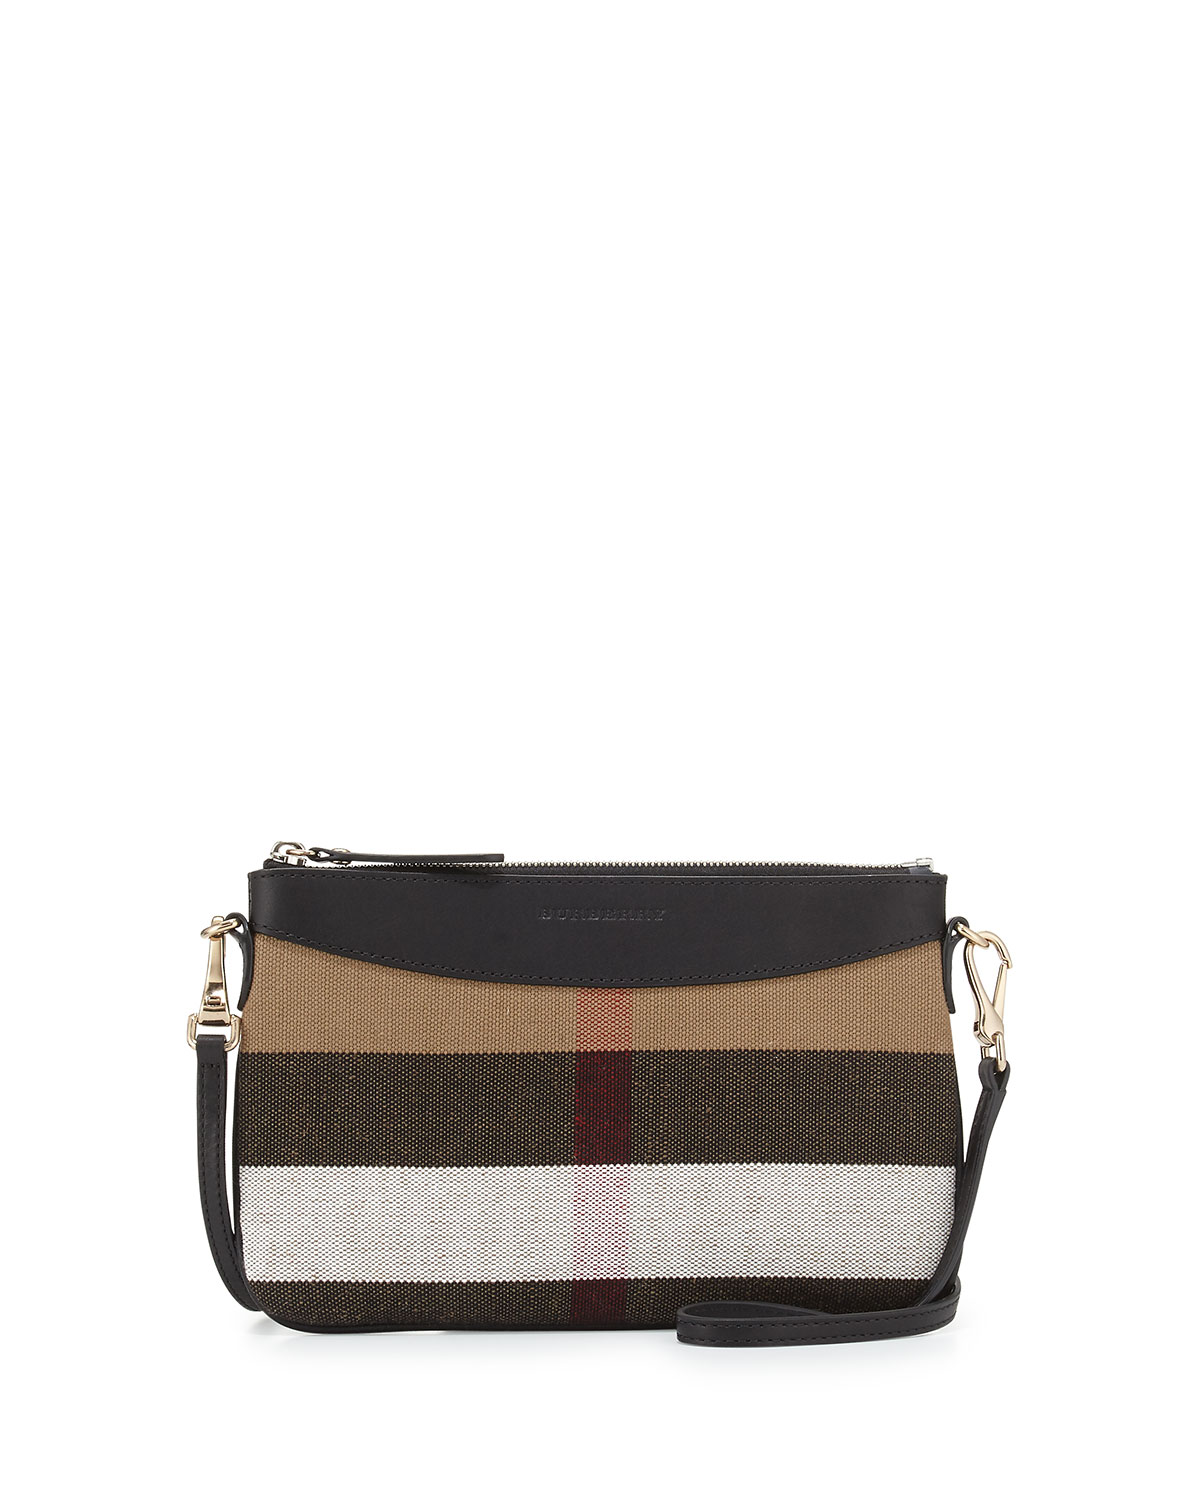 38d87662c1 Burberry Peyton House Check Crossbody Bag